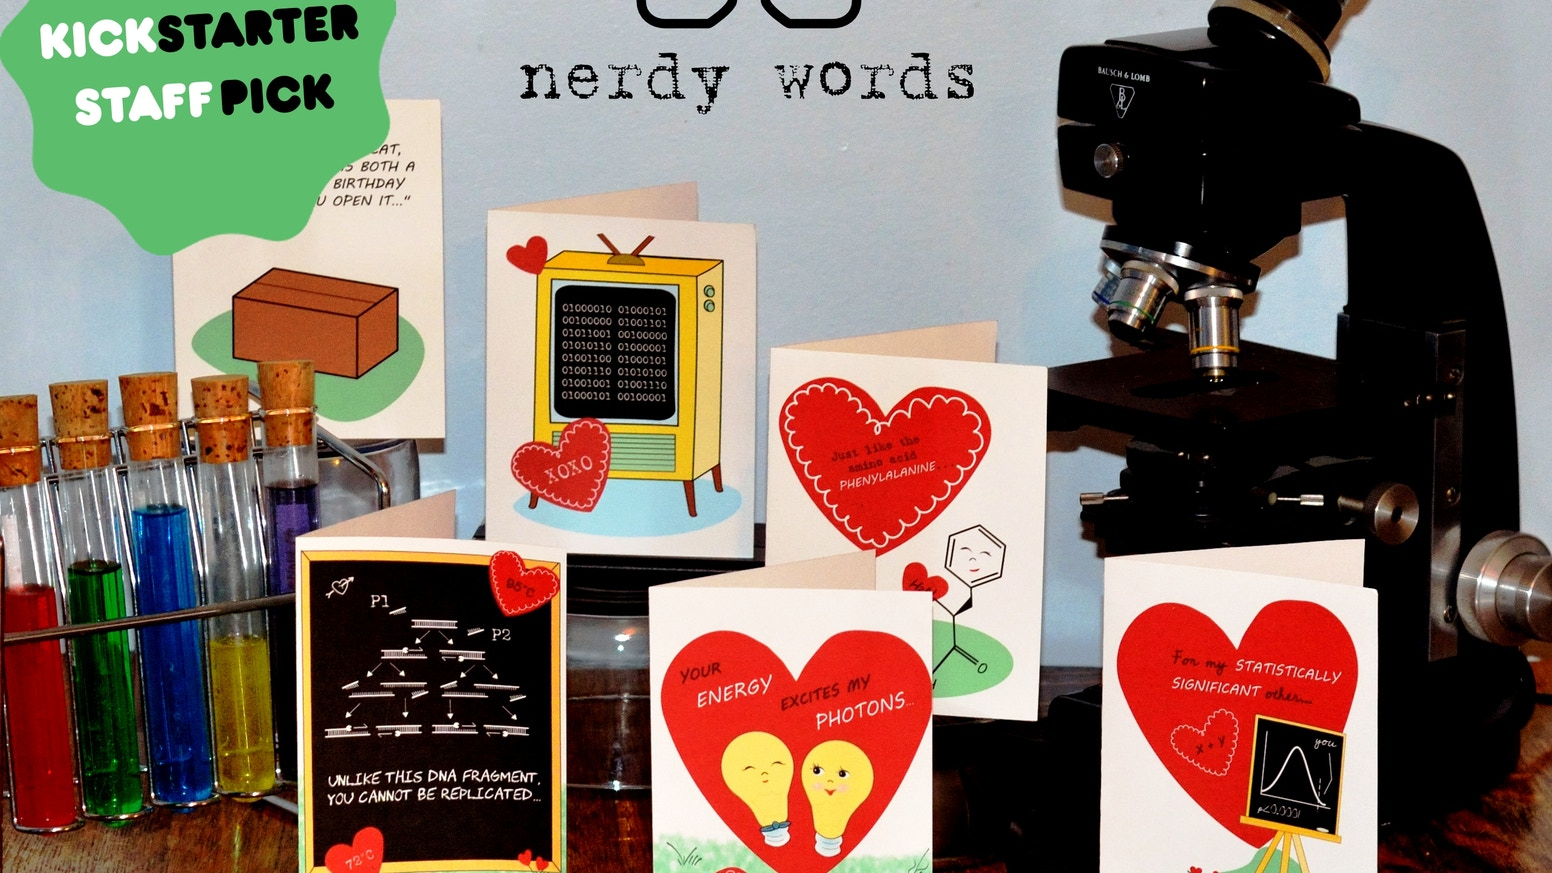 Let your inner geek speak your love with these eco-friendly, science Valentine's Day greeting cards. Right in time for the big day!